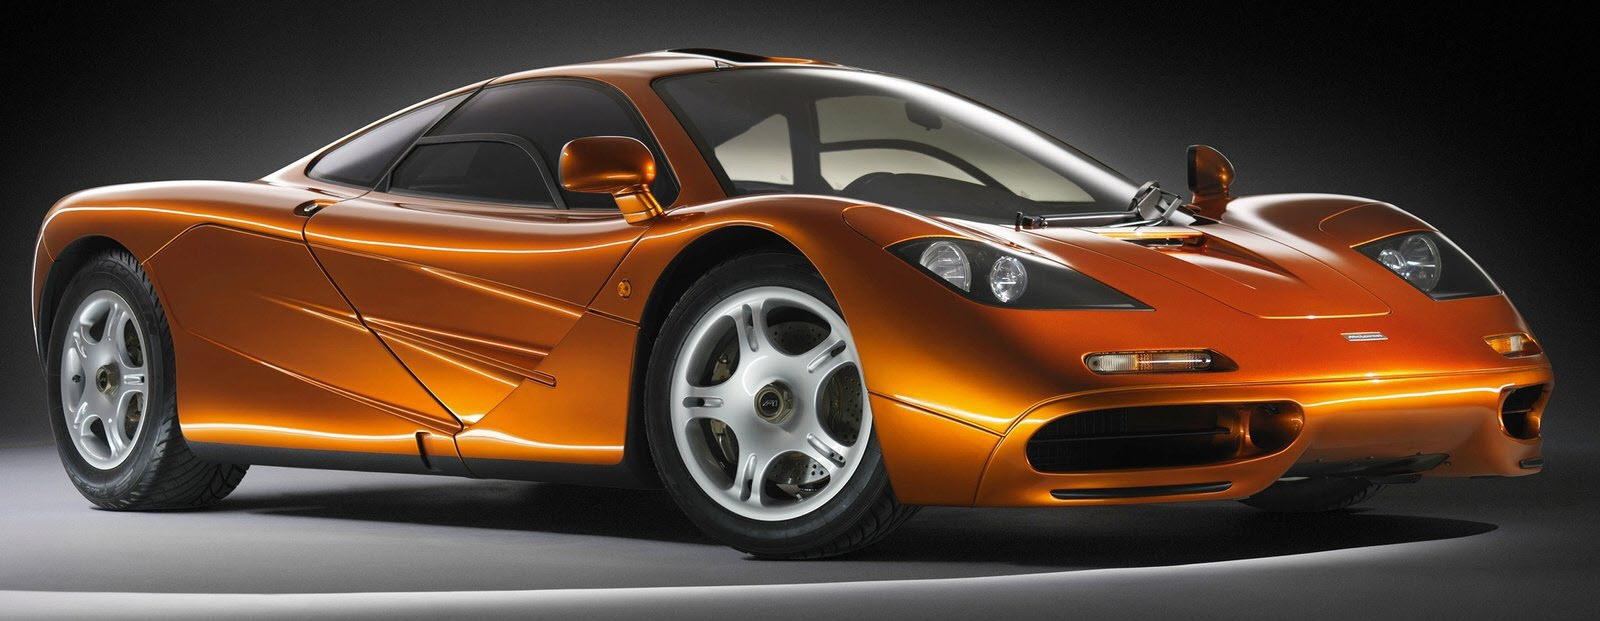 McLaren F1 | The fastest naturally aspirated road car ever built!